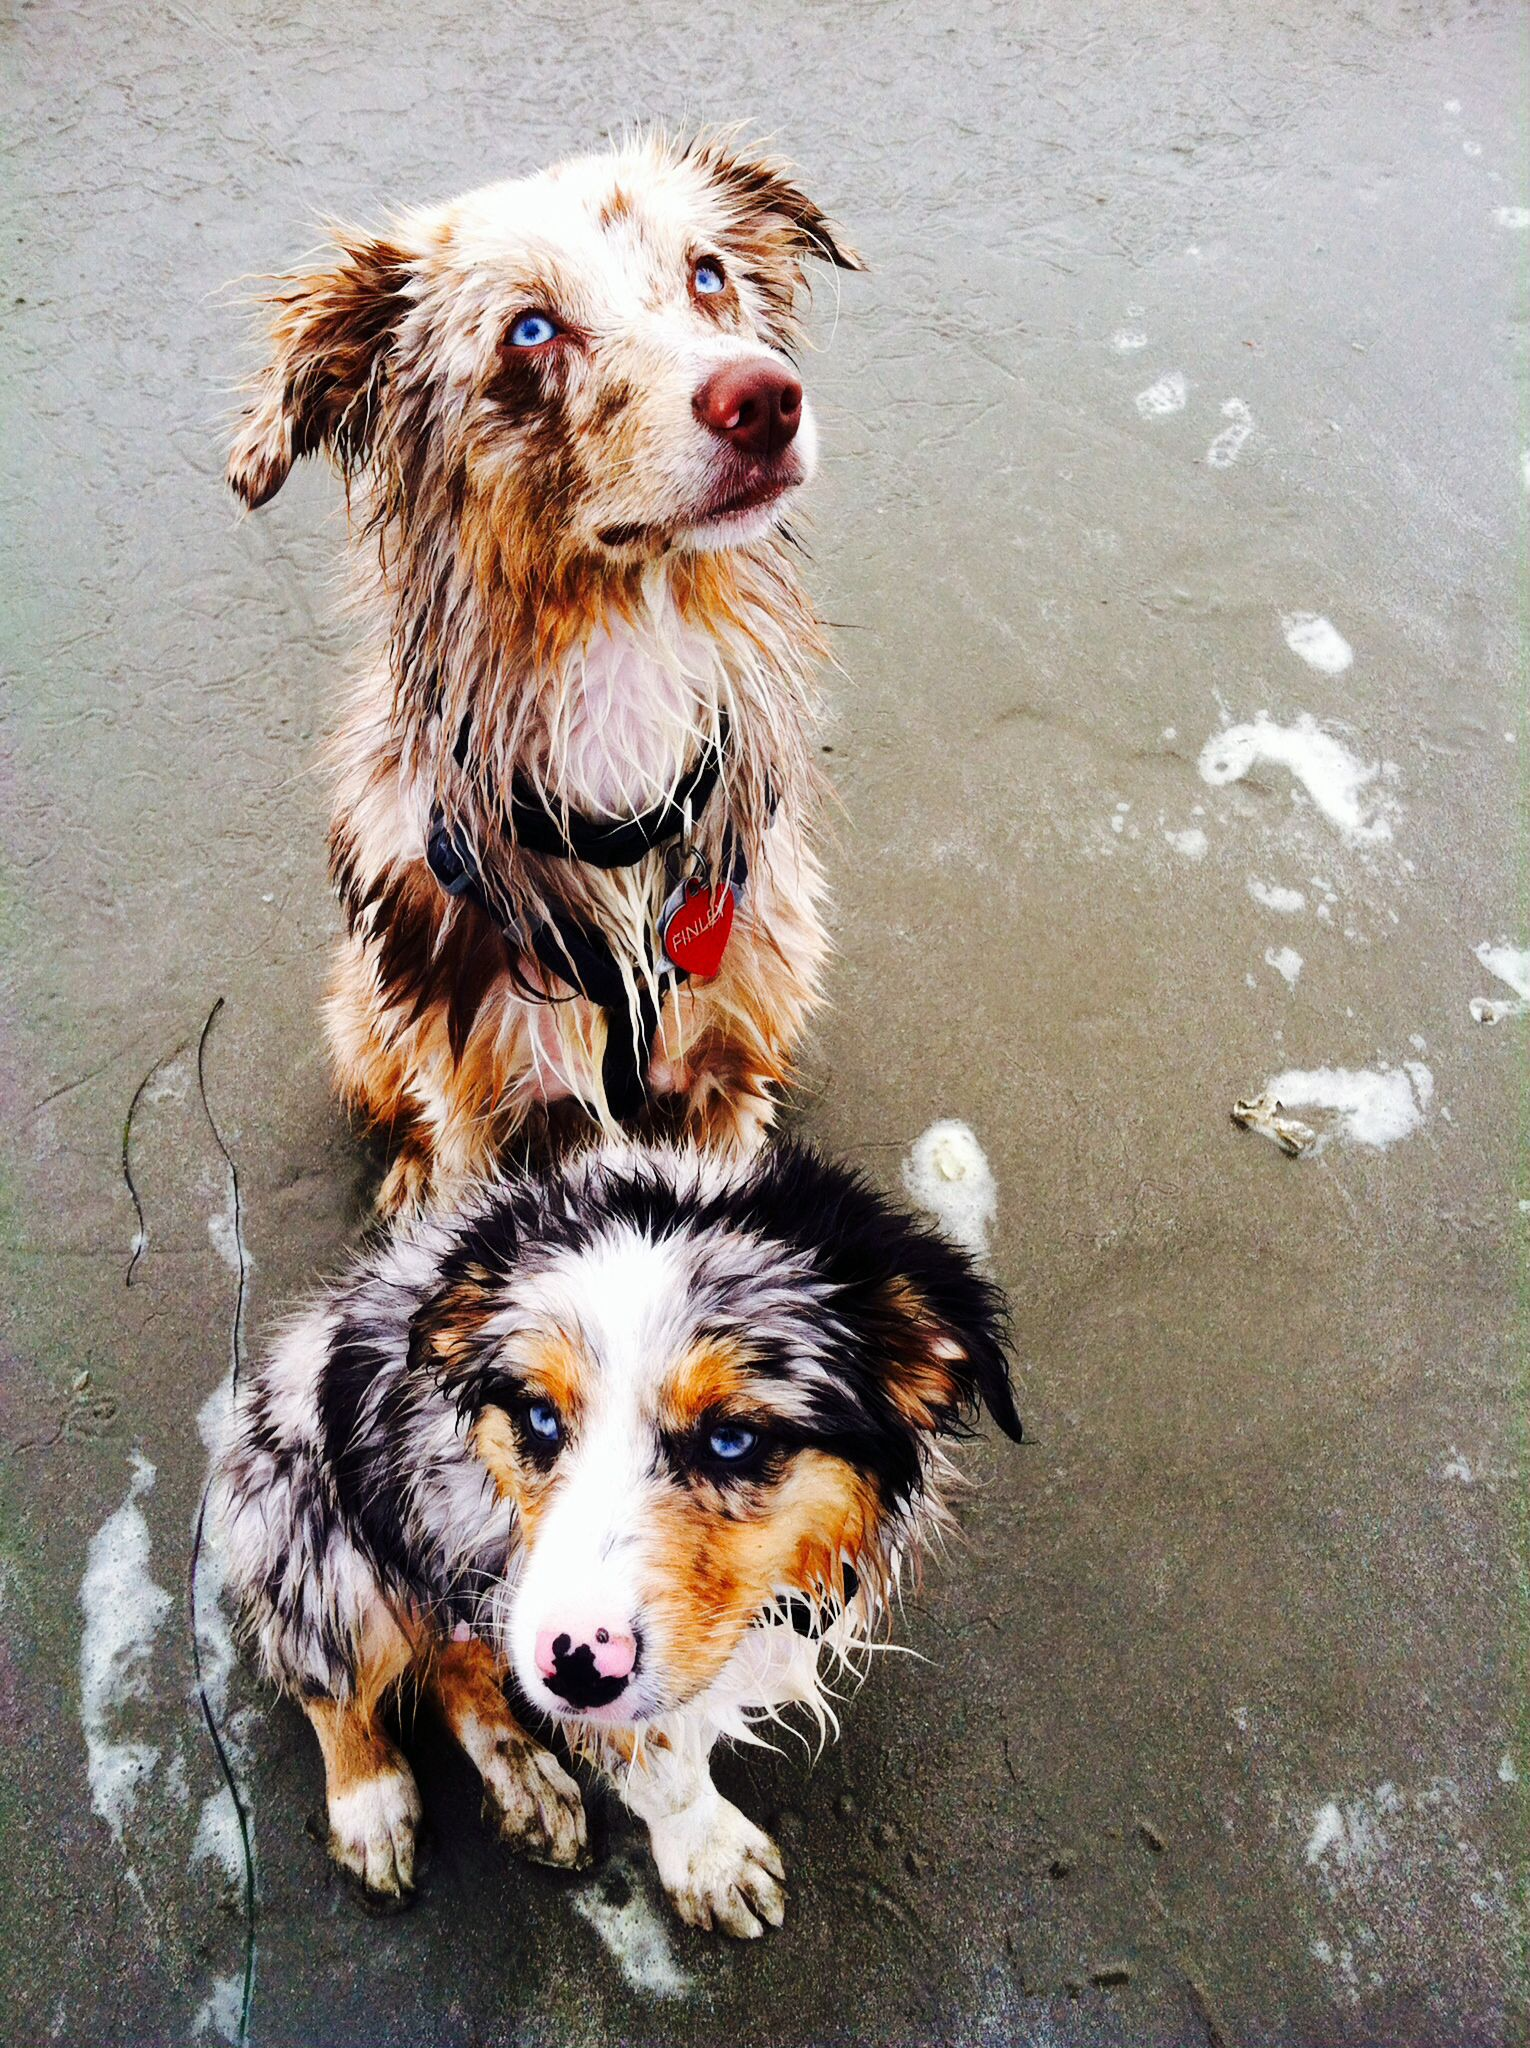 Finley 7 Month Old Red Merle Mini Aussie With Maybelline 3 Month Old Blue Merle Mini Aussie Australian Shepherd Dogs Australian Shepherd Dogs